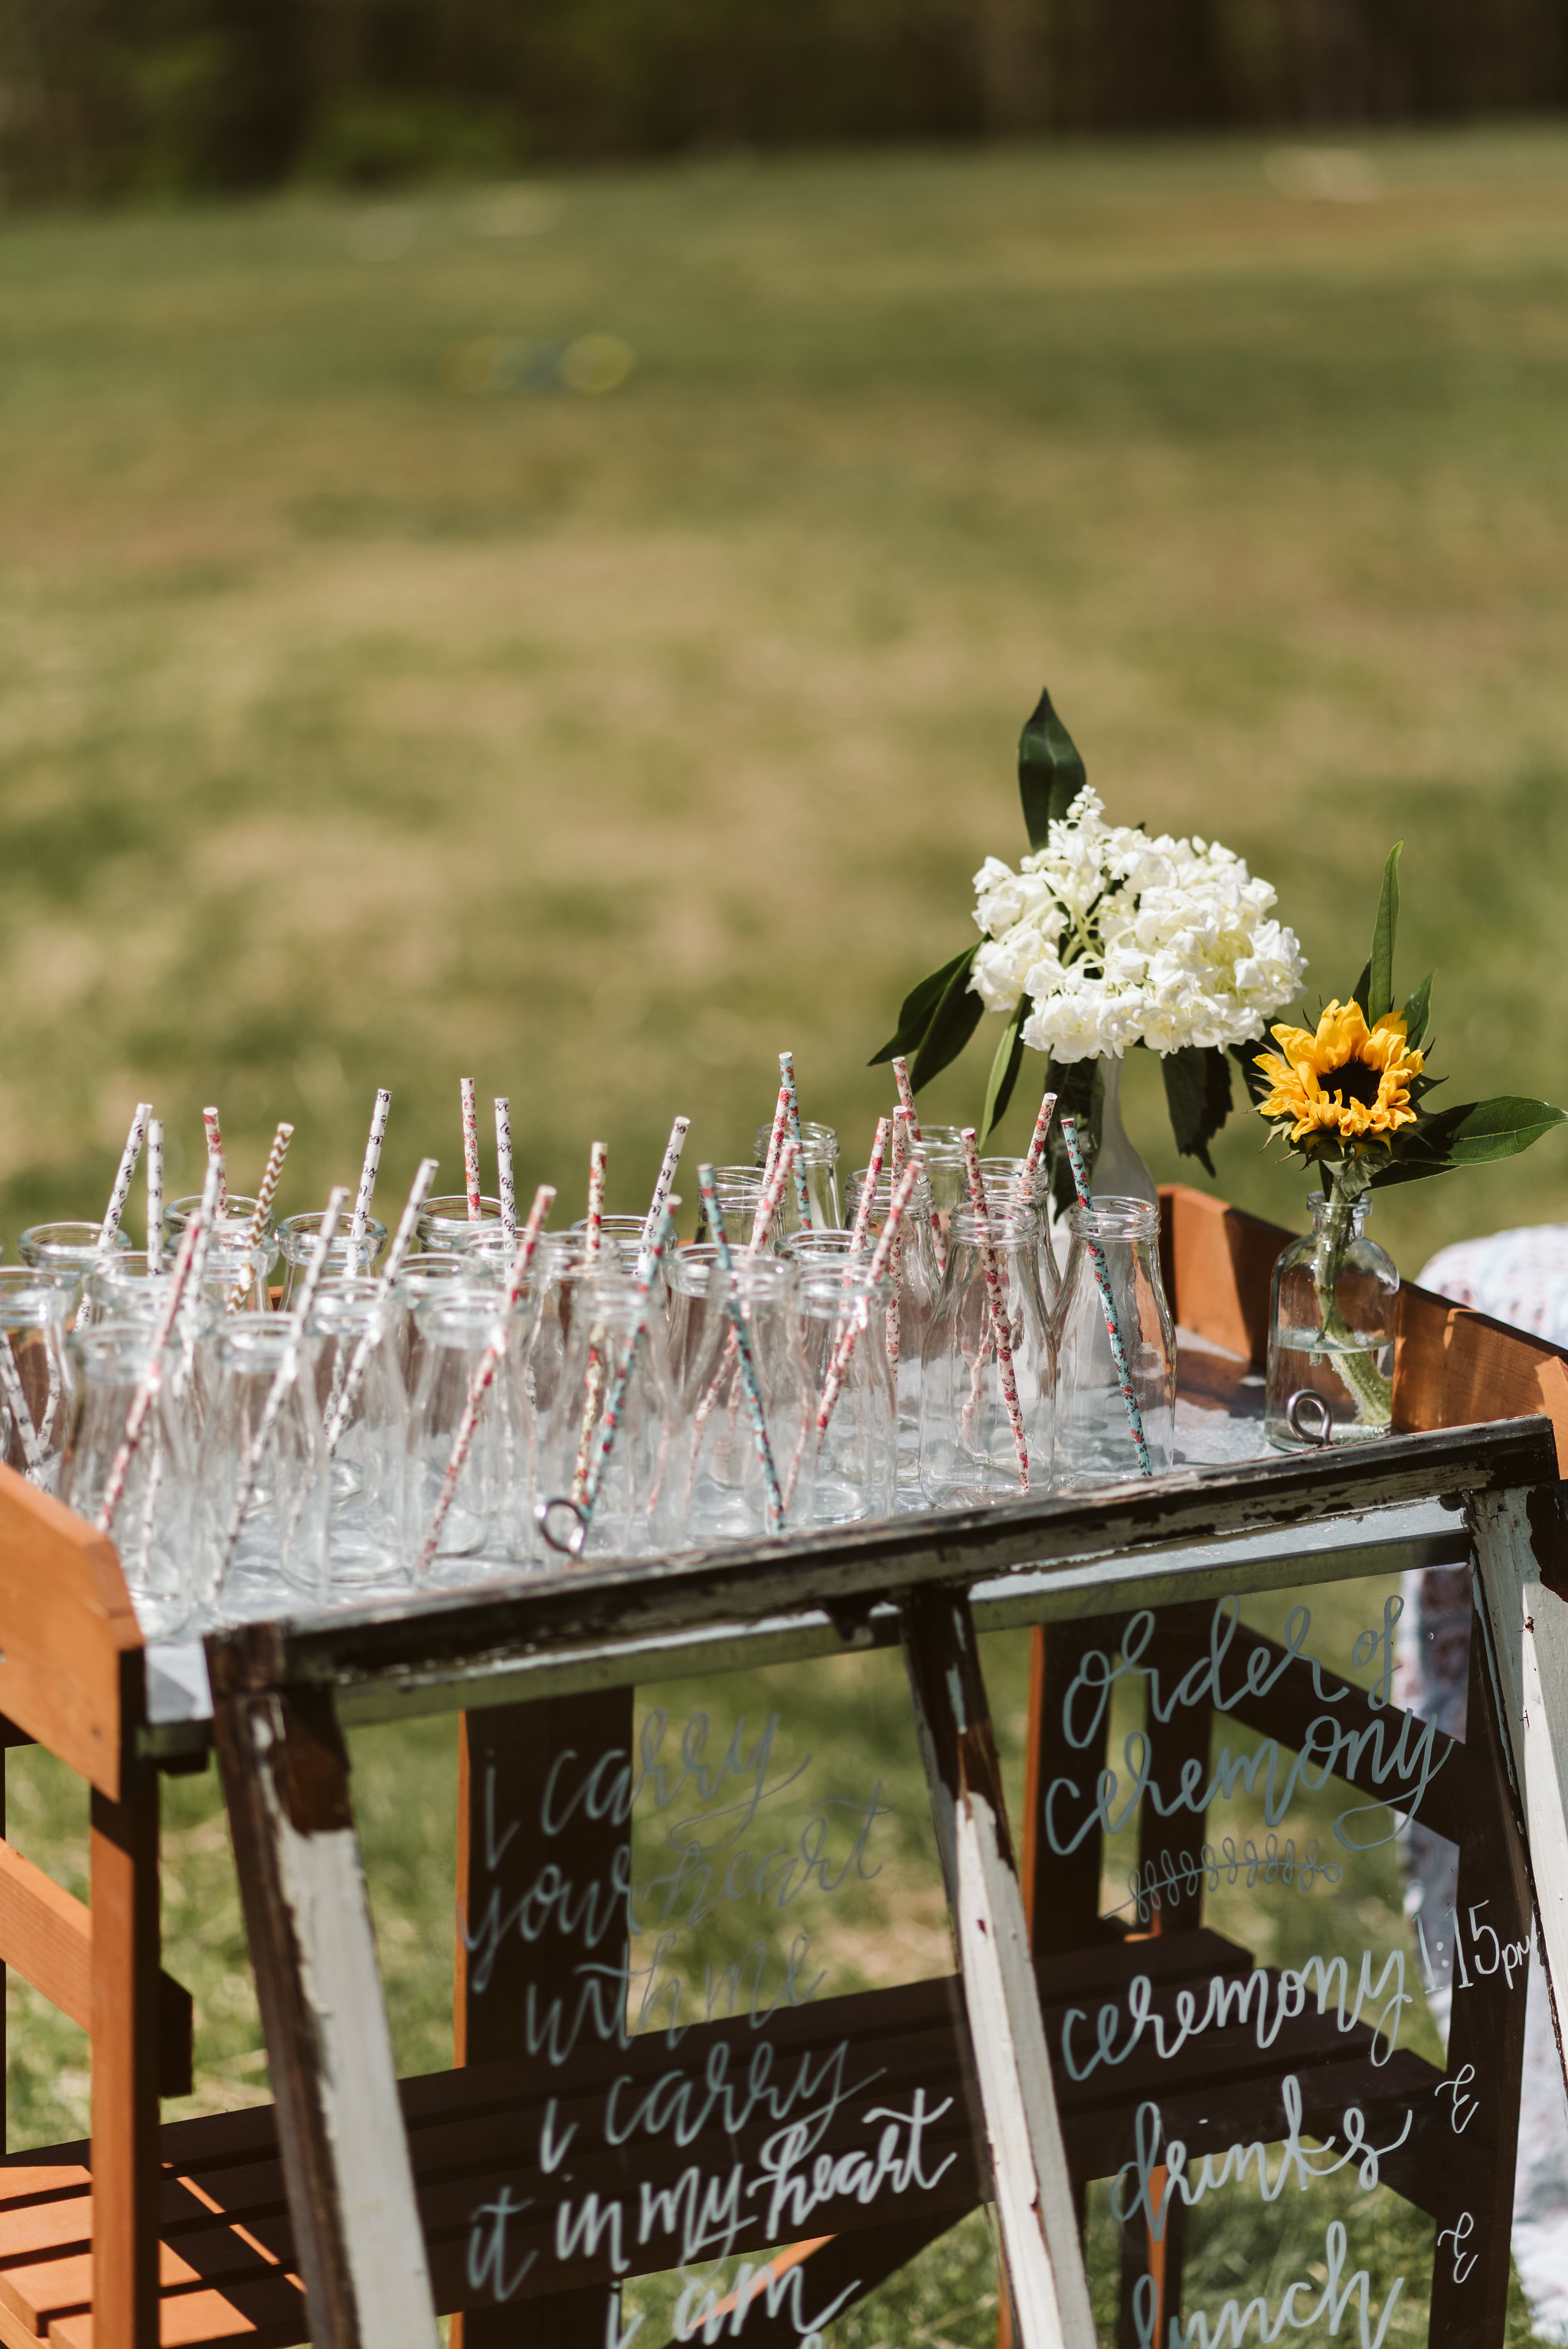 Spring Outdoor Wedding, Park, Baltimore Wedding Photographer, DIY, Classic, Upcycled, Garden Party, Romantic, Handmade Drinks Bar, Glass Jars and Paper Straws